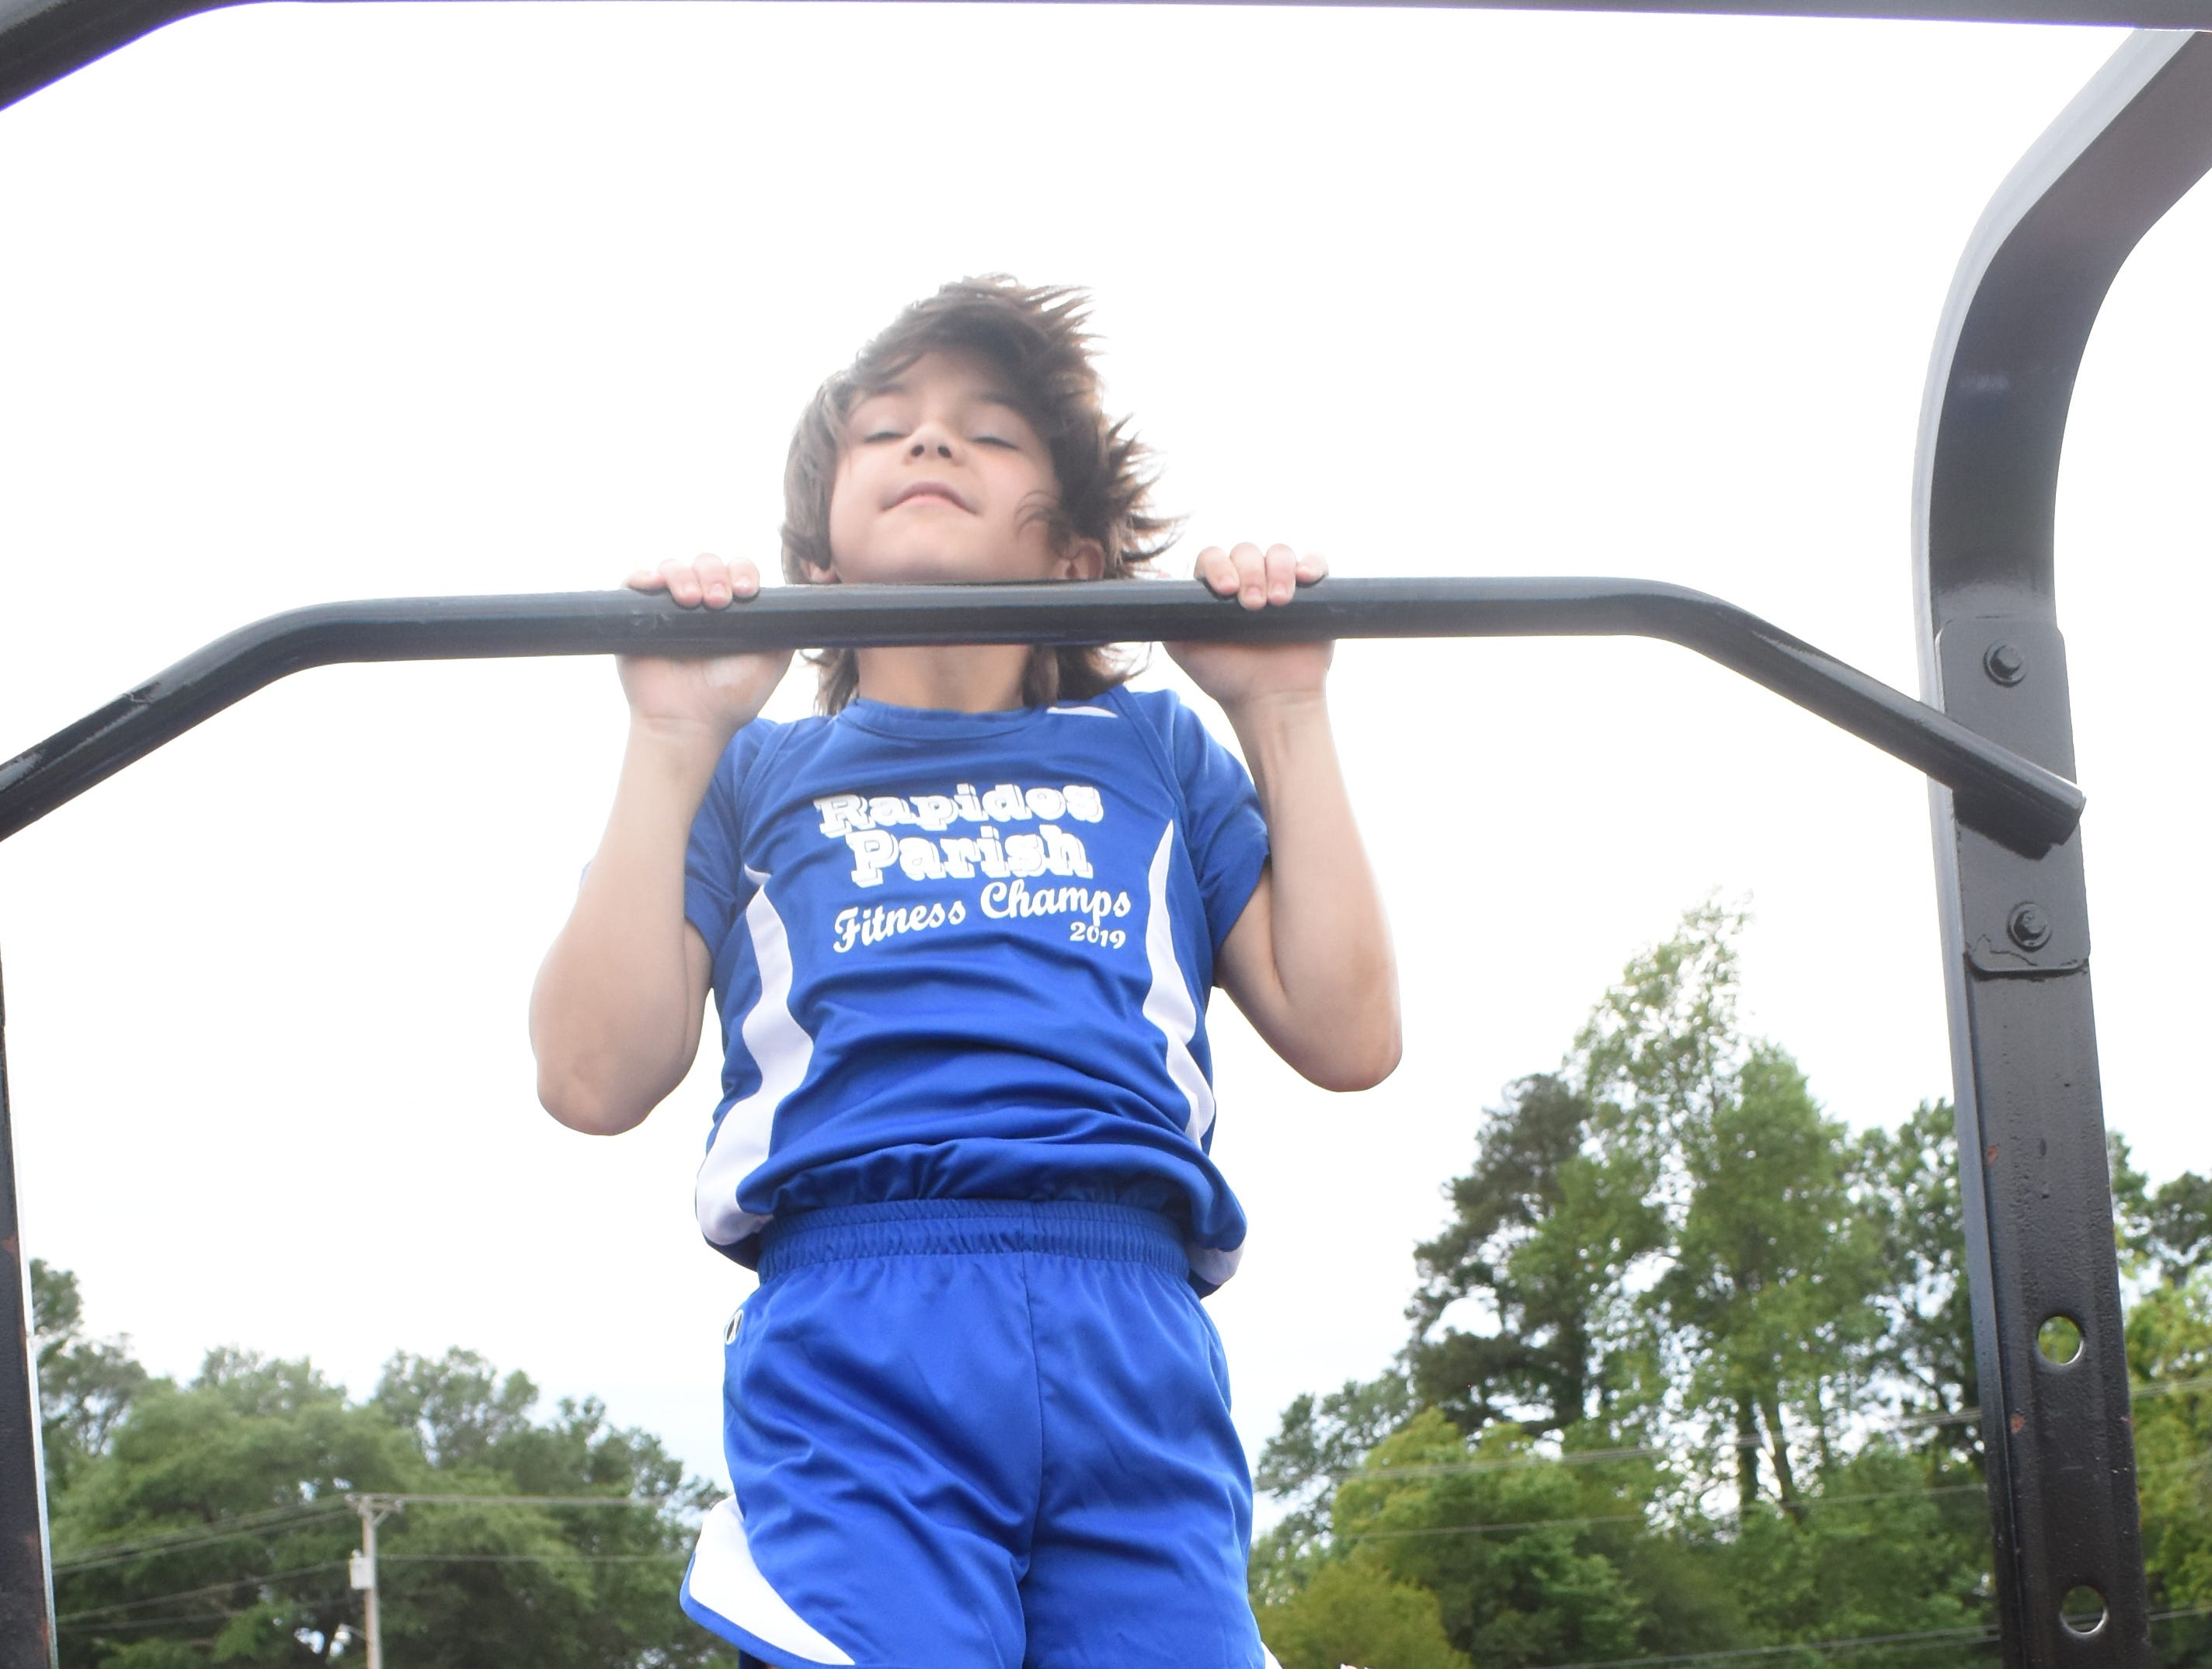 Bryce Warthen of Hayden Lawrence Elementary School, does pull-ups. Bryce is part the 2019 Rapides Parish Fitness Team. He and five other Rapides Parish elementary school students will compete in the 2019 State Championship Fitness Meet to be held Saturday, April 27, 2019 at Alexandria Senior High School. The meet is part of the Governor's Council on Fitness and Sports. Students from throughout Louisiana will compete in seven events: 50-yard dash, sit and reach, pull-ups,  shuttle run, curl-ups (sit-ups), standing long jump, and the 600-yard run. For the past three years, the Rapides Parish Fitness Team has placed first at the meet. Dean was the highest scoring boy last year and won the title of 2018 Mr. Fitness for the State of Louisiana. The meet will be from 10 a.m. to 2 p.m.